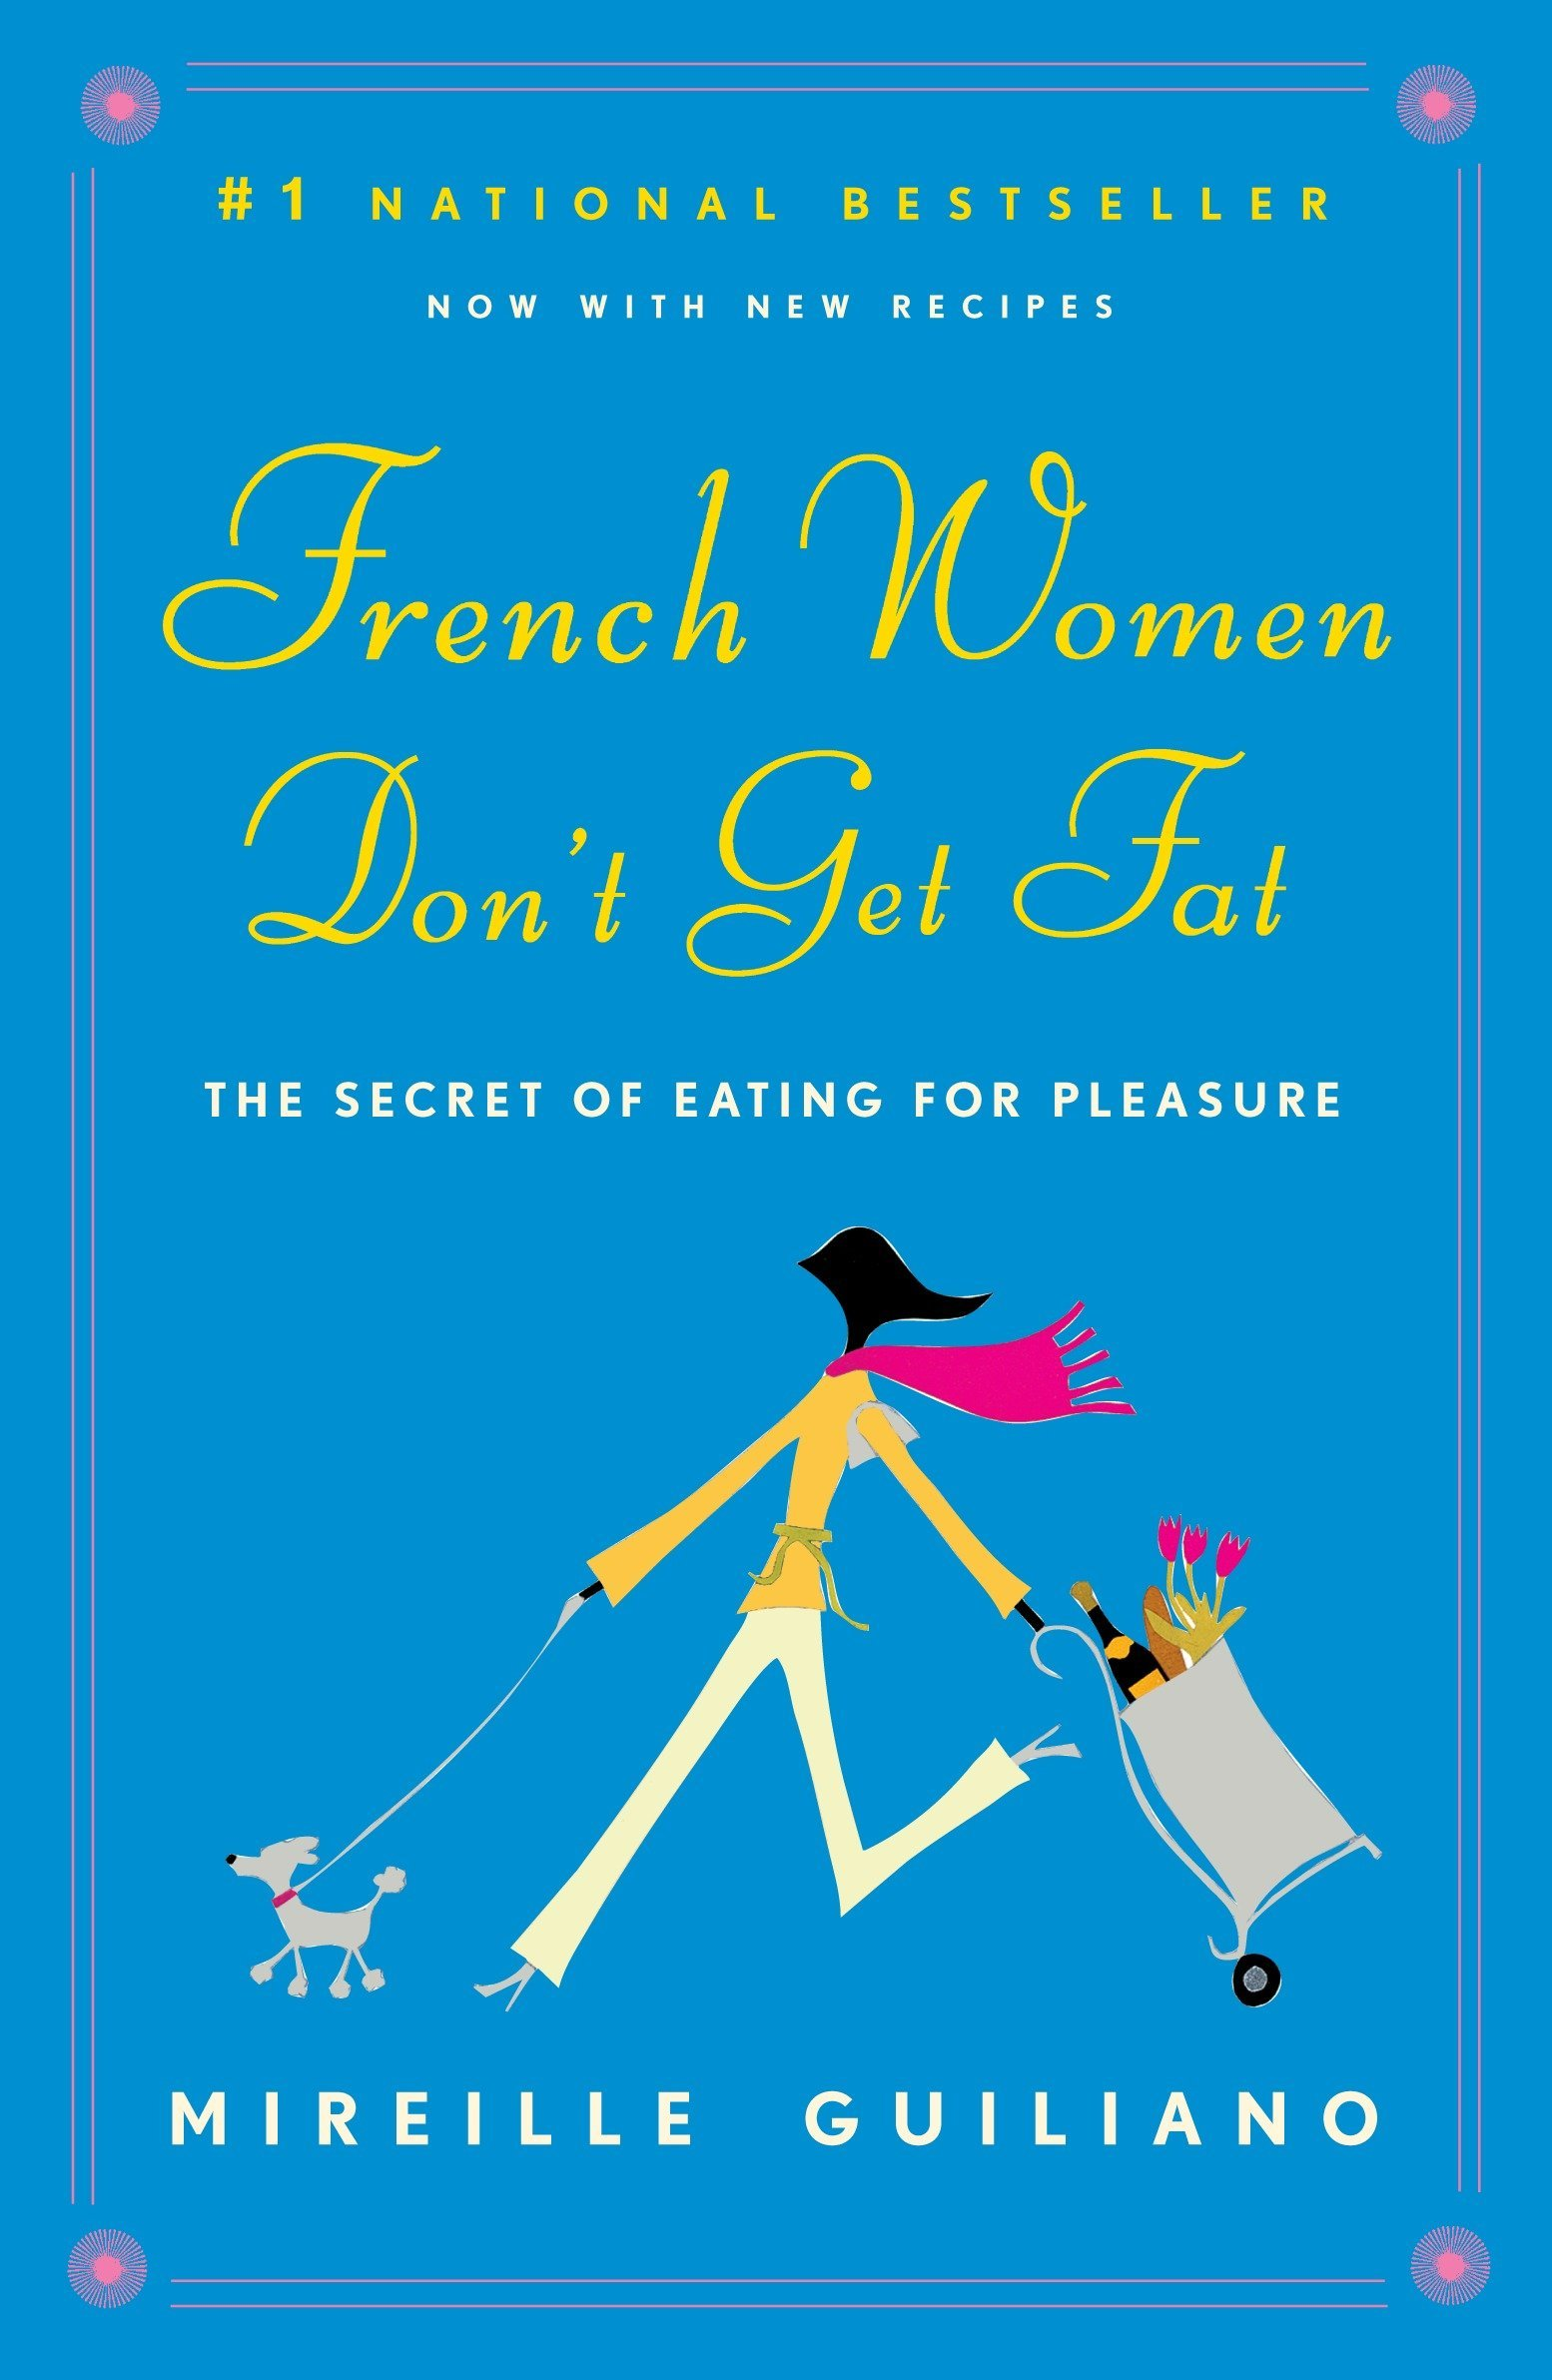 "why french women don't get fat - By Mireille GuilianoStylish, convincing, wise, funny, and just in time: the ultimate non-diet book, which could radically change the way you think and live – now with more recipes.French women don't get fat, even though they enjoy bread and pastry, wine, and regular three-course meals. Unlocking the simple secrets of this ""French paradox"" – how they enjoy food while staying slim and healthy – Mireille Guiliano gives us a charming, inspiring take on health and eating for our times.For anyone who has slipped out of her Zone, missed the flight to South Beach, or accidentally let a carb pass her lips, here is a positive way to stay trim, a culture's most precious secrets recast for the twenty-first century. A life of wine, bread – even chocolate – without girth or guilt? Pourquoi pas?"